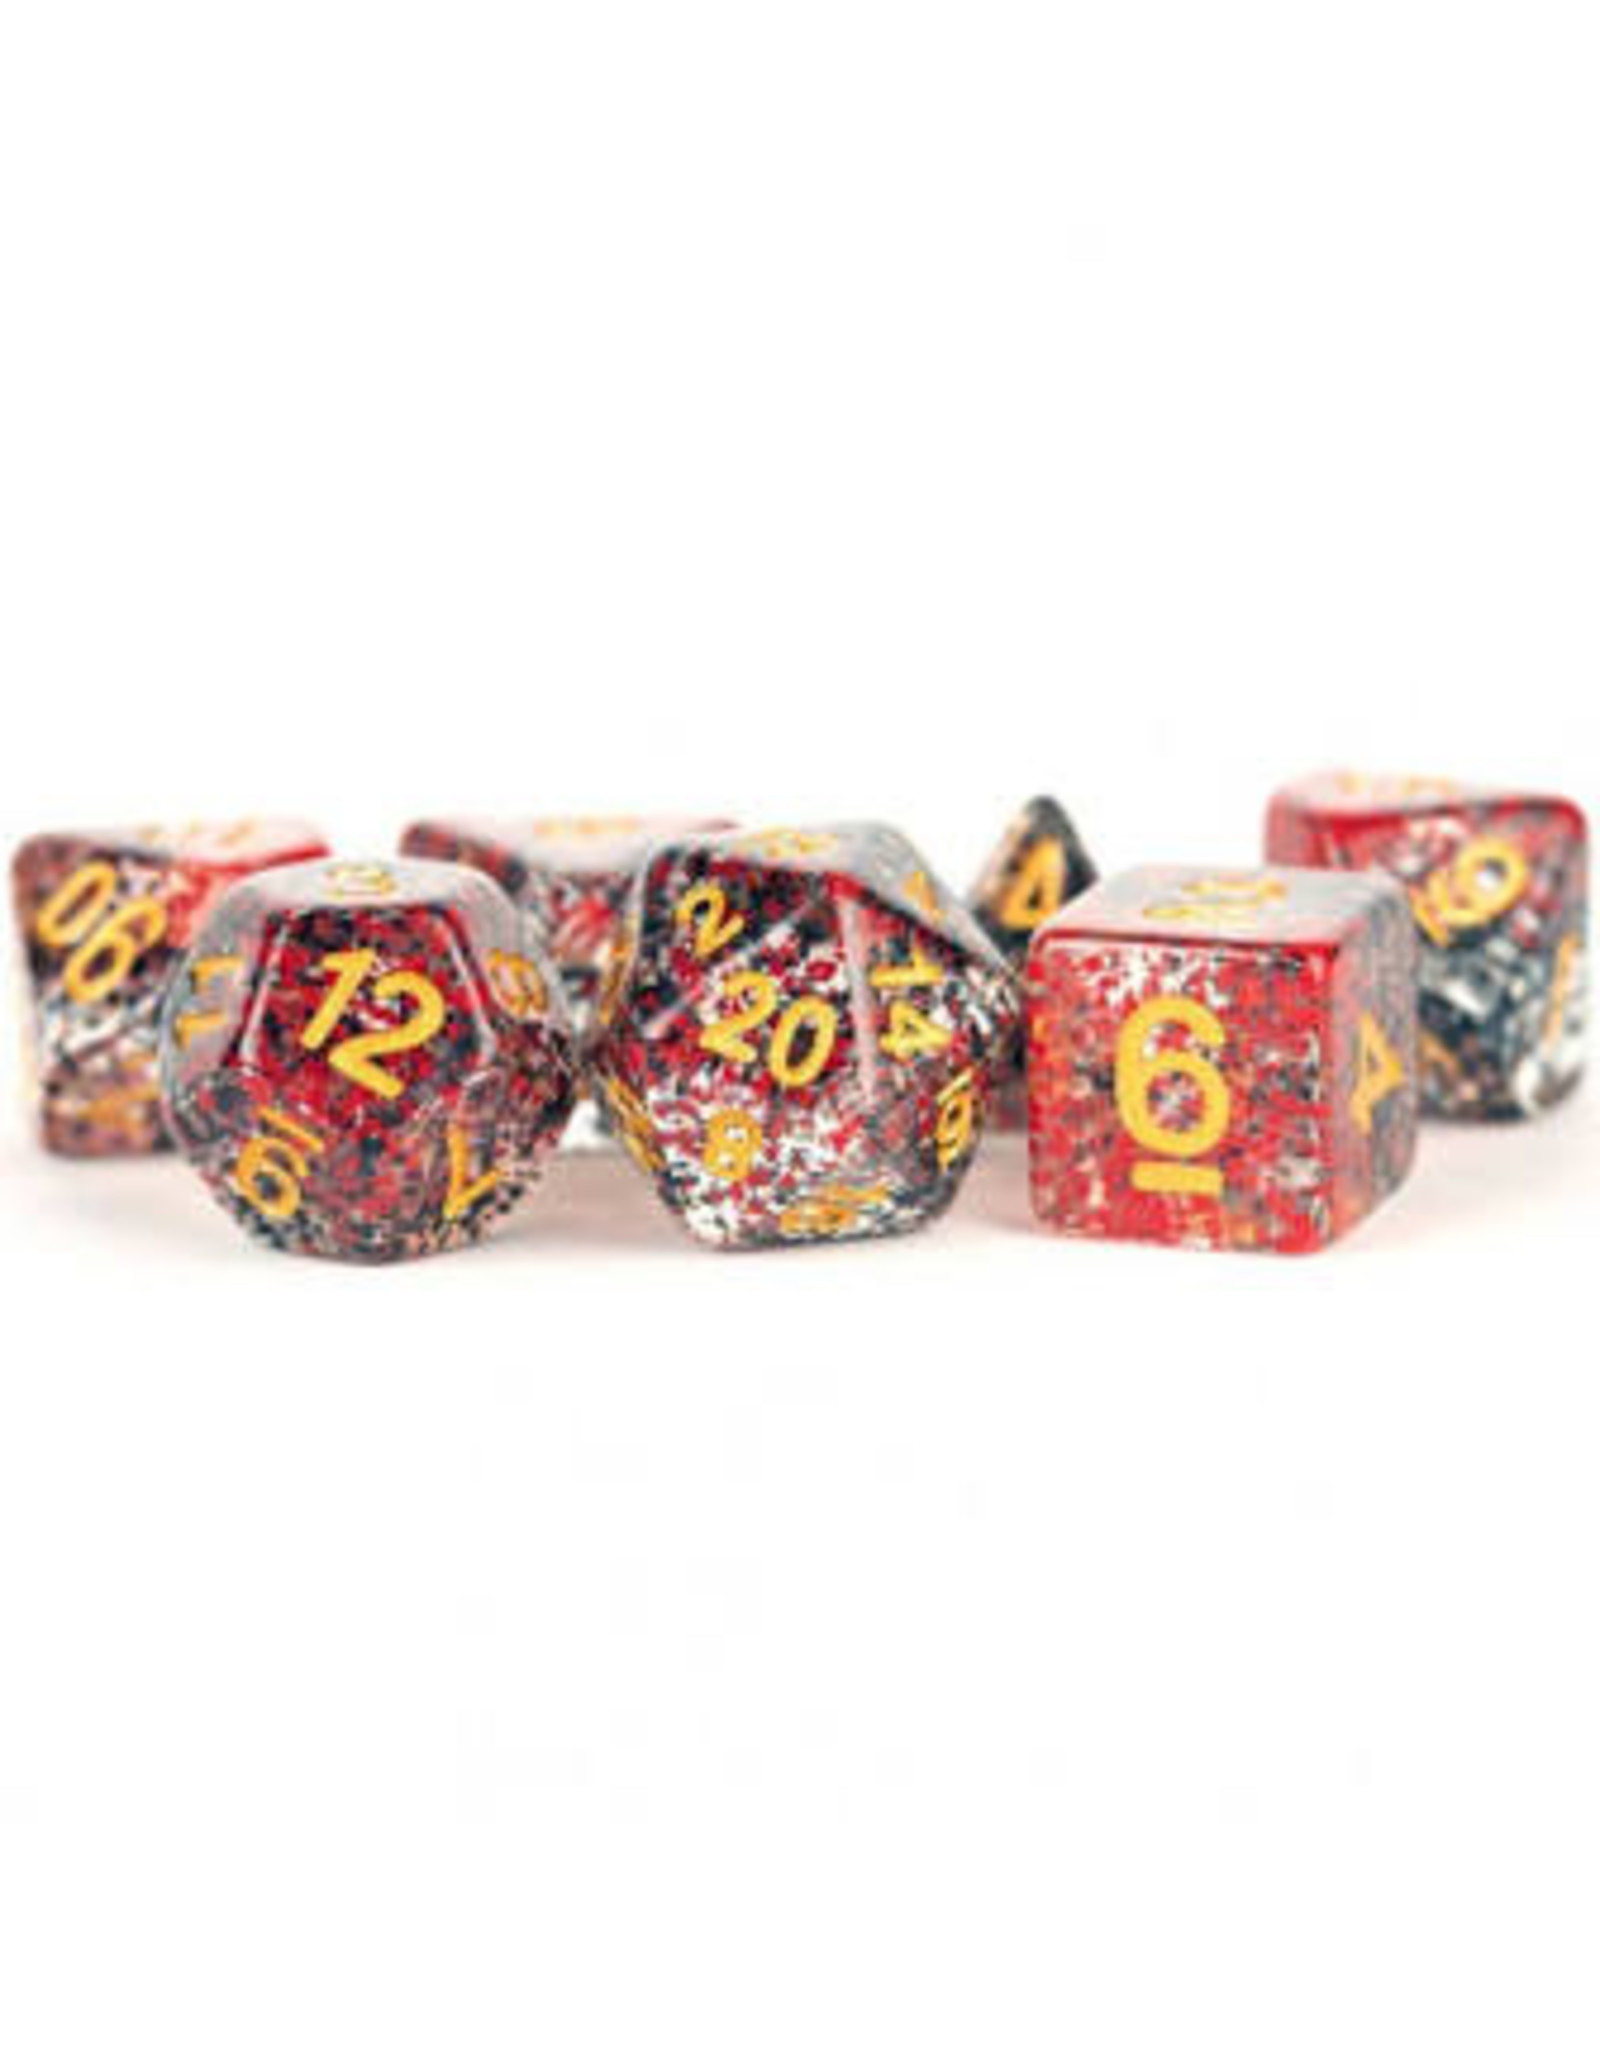 Dice 7-Set: Particle RDBKgd